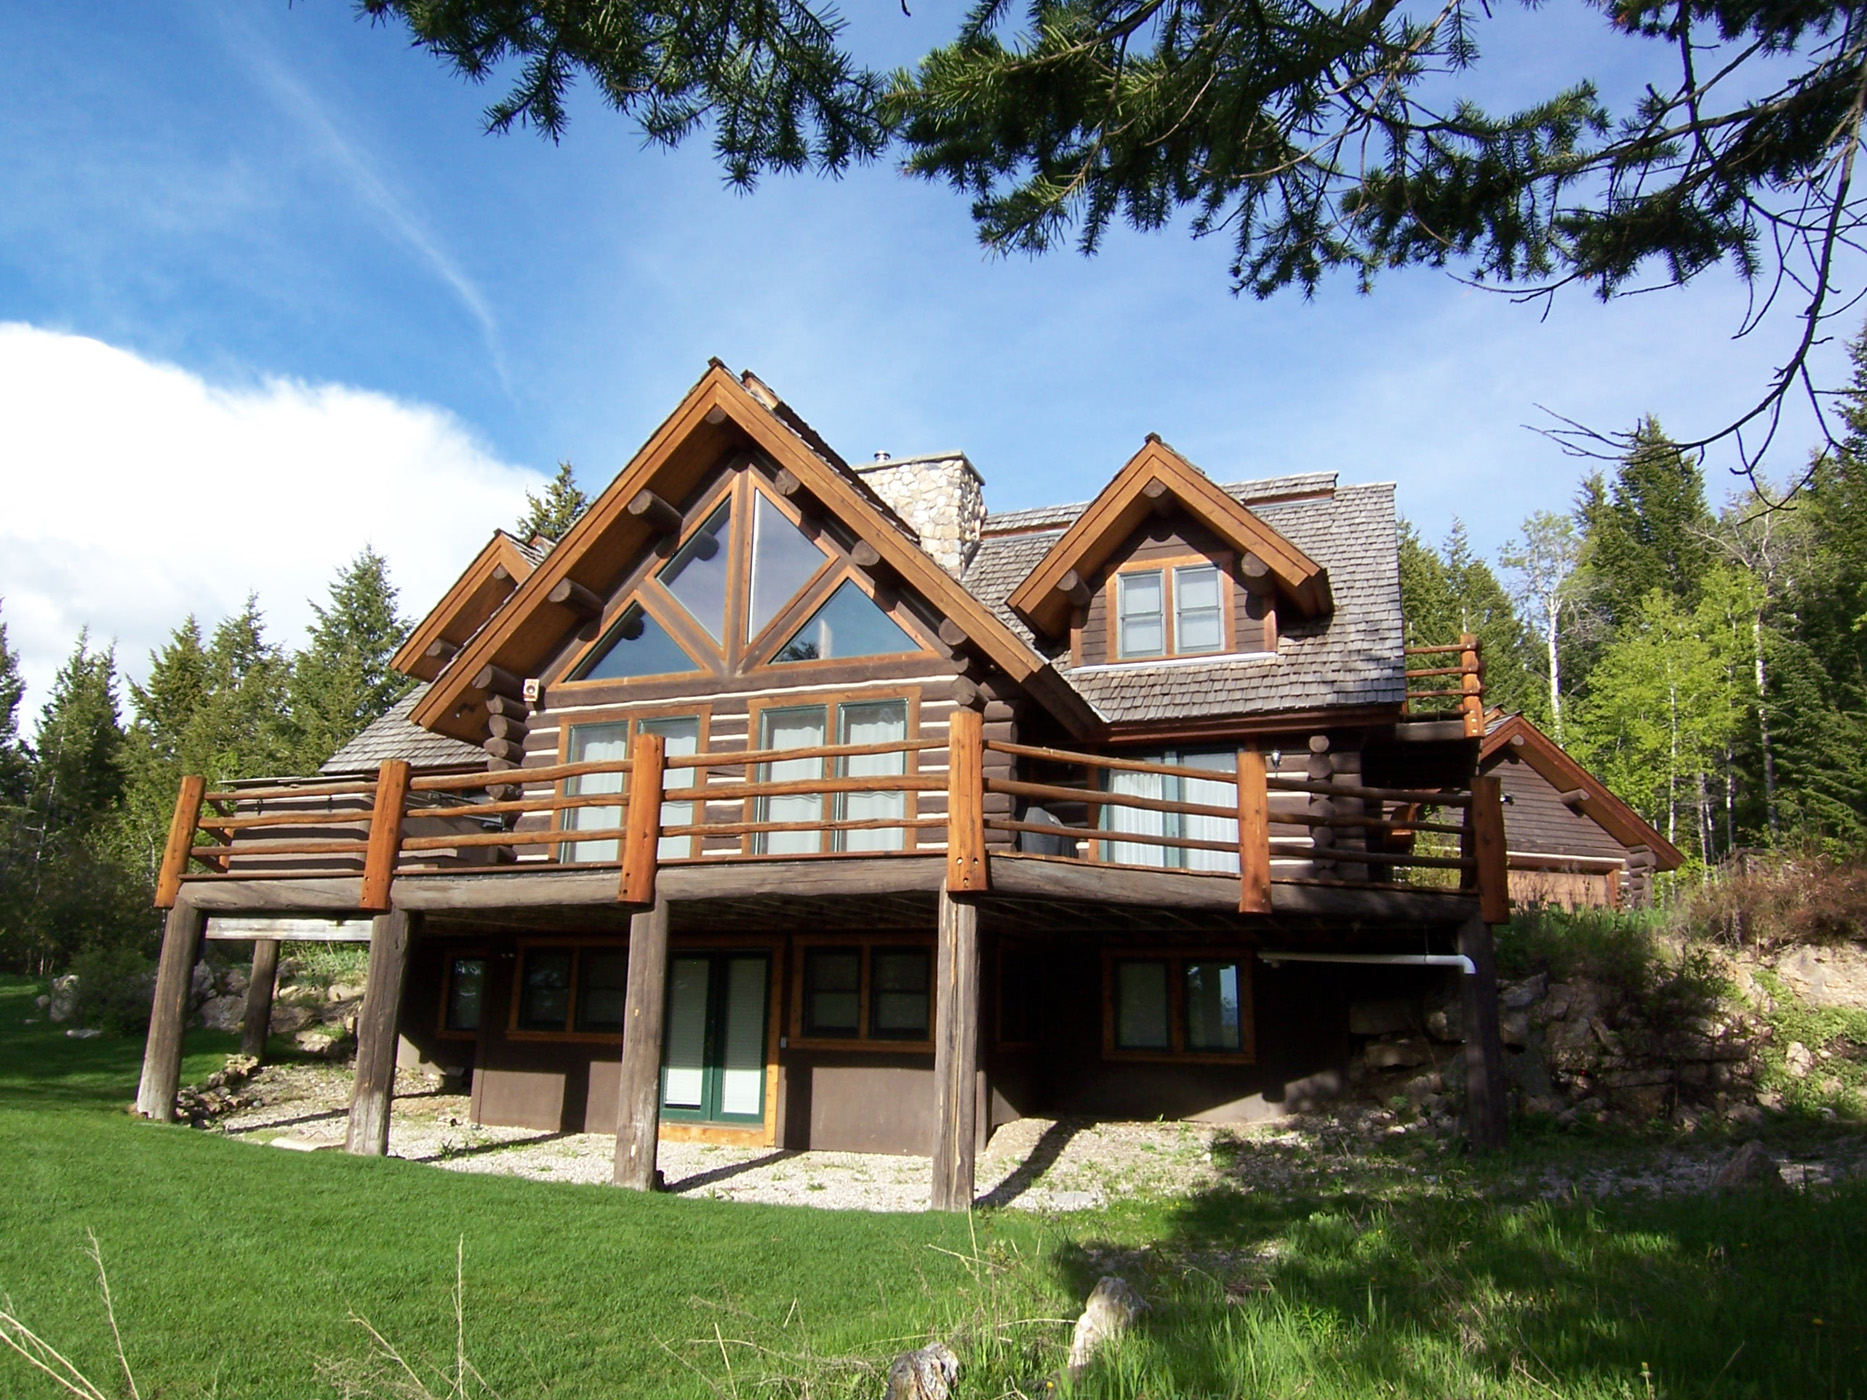 獨棟家庭住宅 為 出售 在 Handcrafted Log Home in the Trees 3310 Sorensen Creek Drive Victor, 愛達荷州, 83455 Jackson Hole, 美國